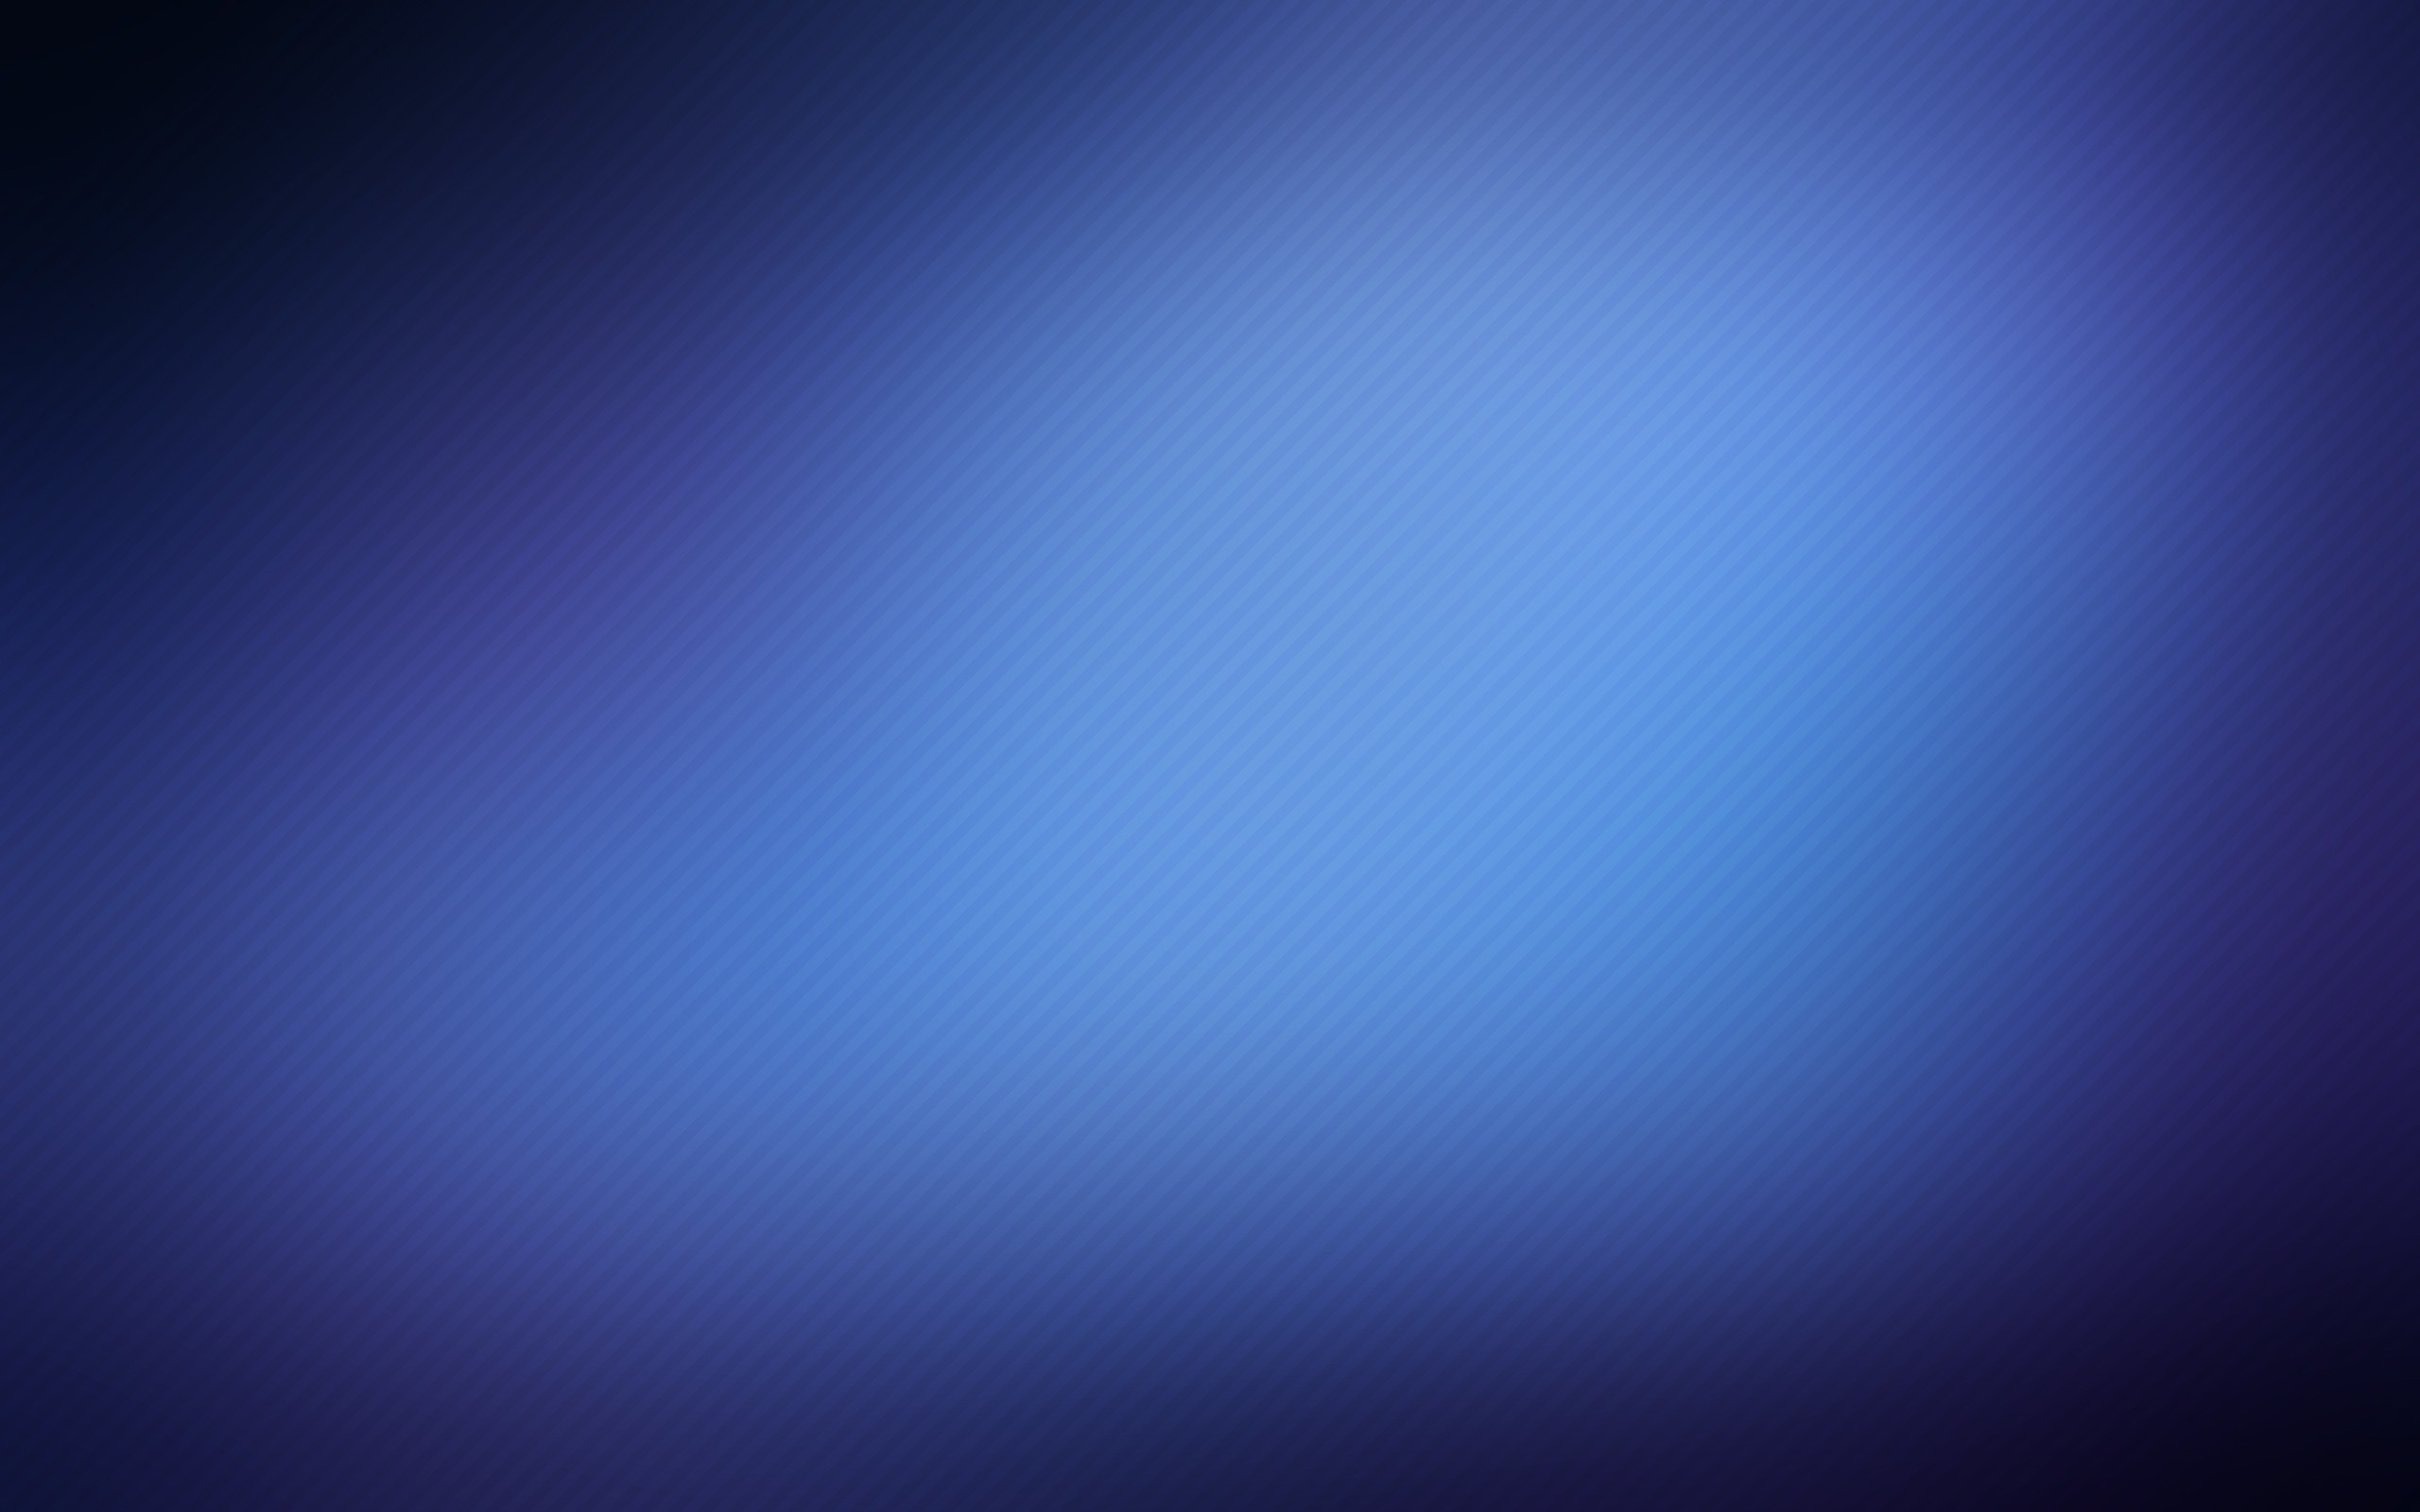 abstract blue gaussian blur HD Wallpaper